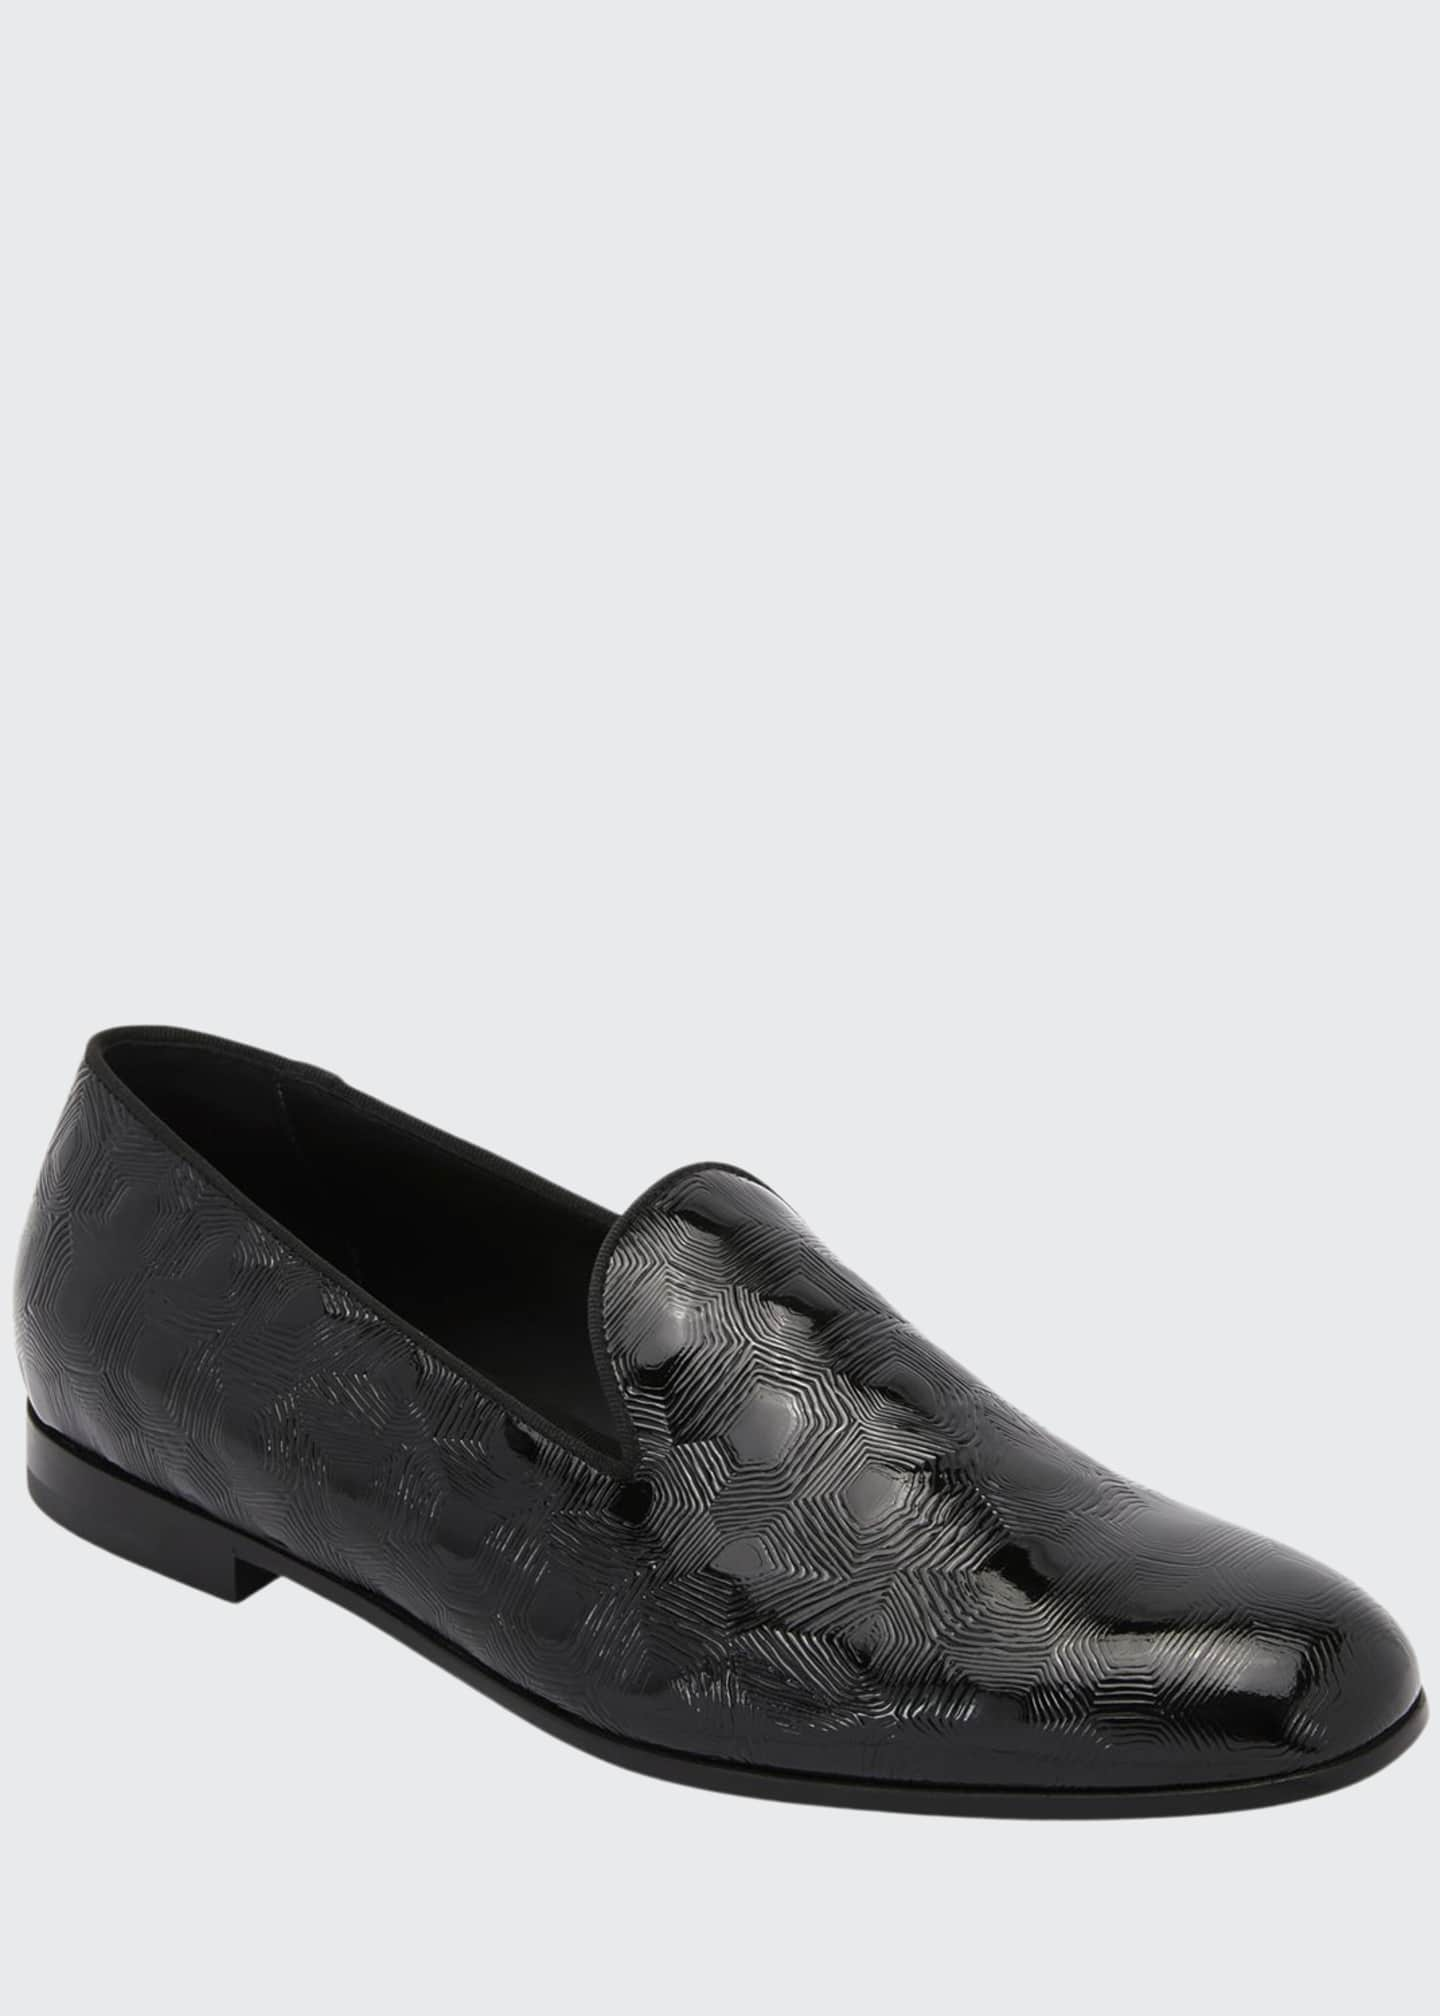 Image 1 of 3: Textured Patent Leather Slip-On Loafer